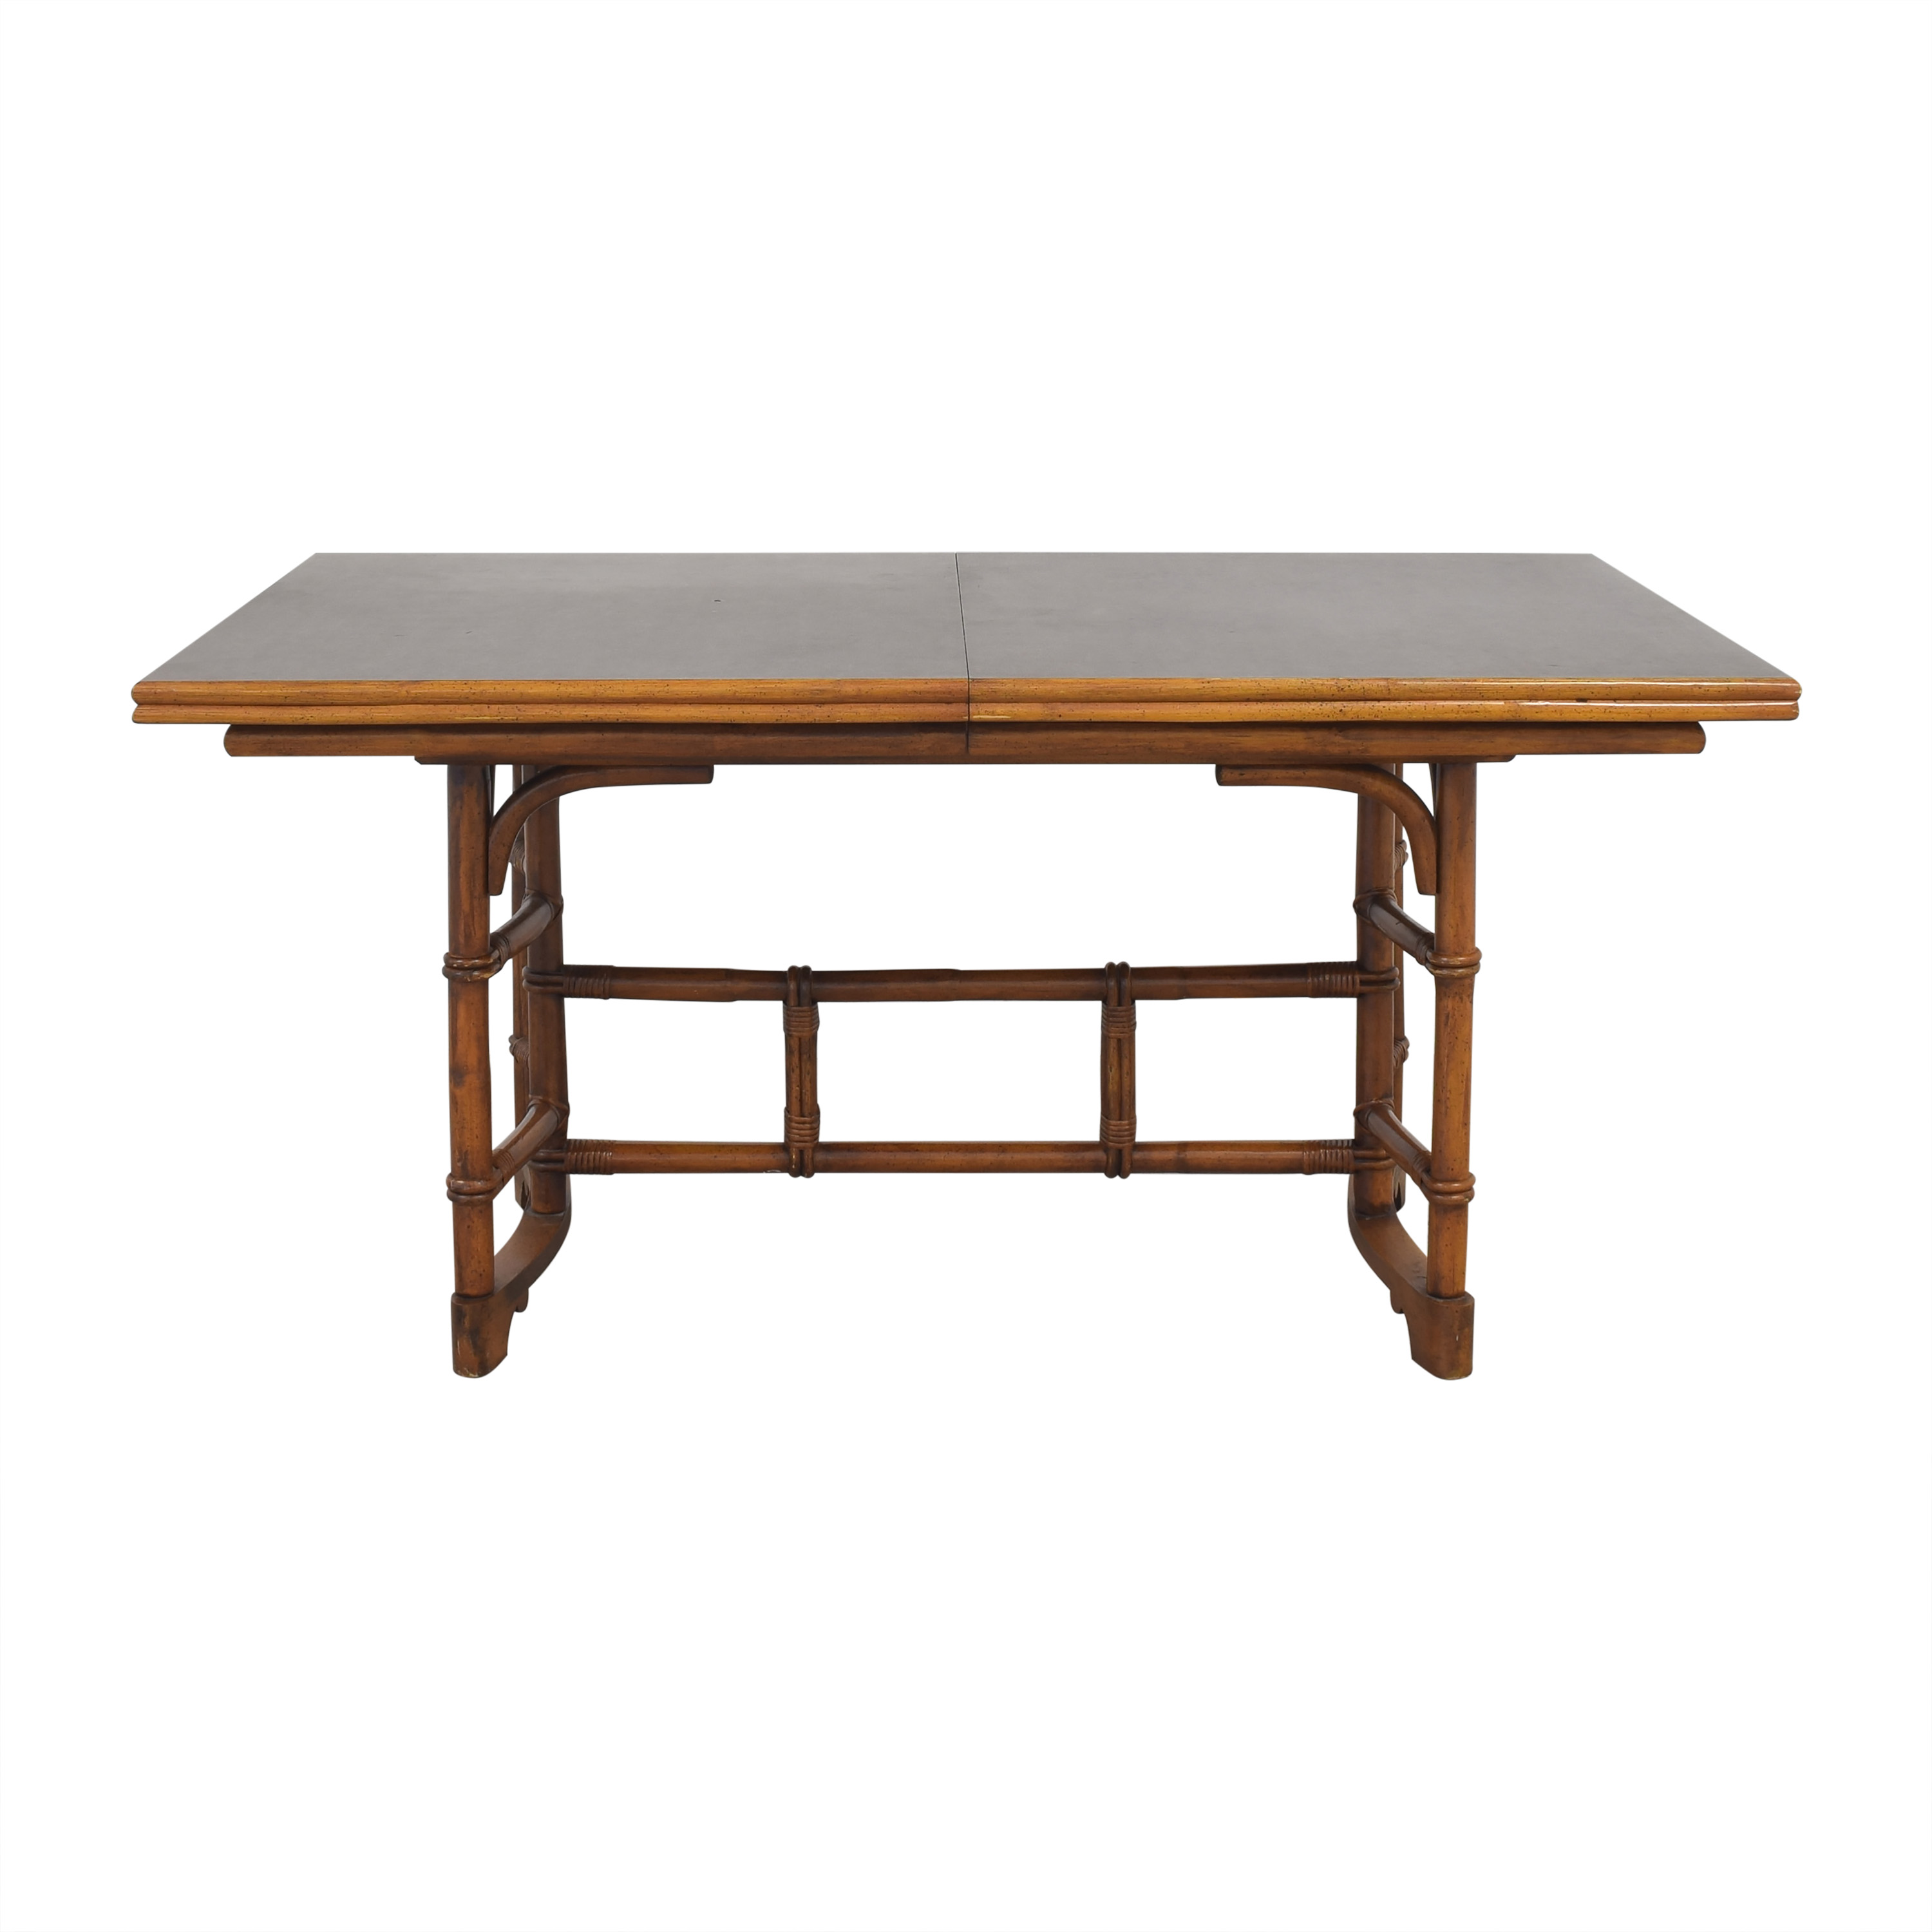 Ficks Reed Ficks Reed Bamboo Style Extendable Dining Table used